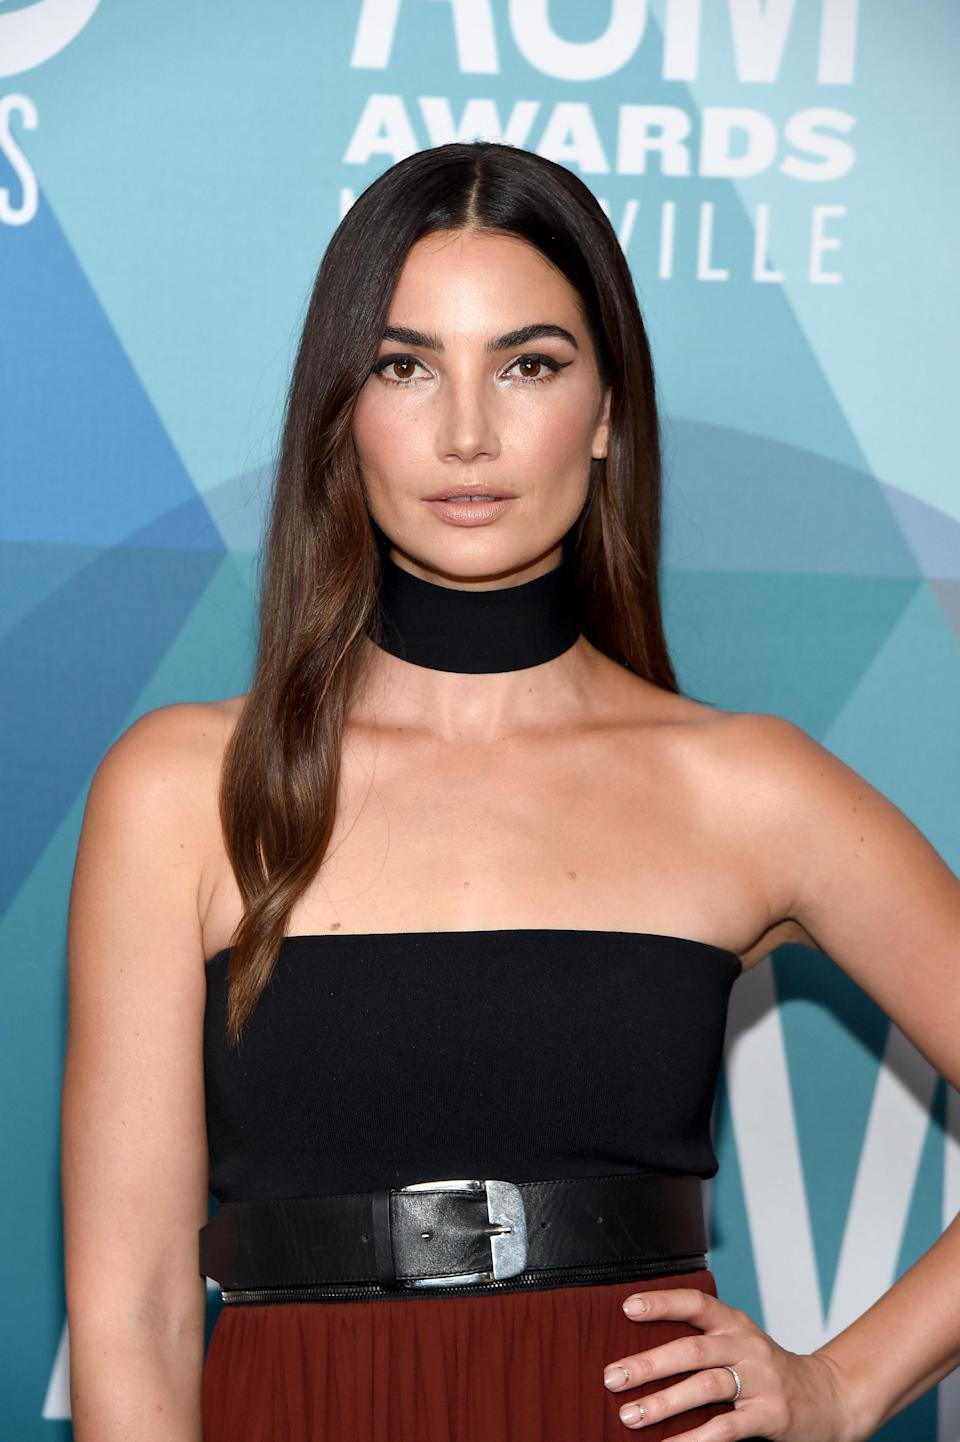 """<p>It's not just highlights that give Lily Aldridge her gorgeous, subtly dimensional brunette look. Cunningham says there's also """"a warm gloss all over making her hair feel very rich and healthy."""" She recommends asking your colorist for highlights with a dark gold all over. """"It's always better to bring in a photo because it's so difficult to describe hair color with words,"""" Cunningham advises. </p> <p>For an easy-to-use brunette gloss treatment you can use right in your own shower, try <a href=""""https://shop-links.co/1733981693807283137"""" rel=""""nofollow noopener"""" target=""""_blank"""" data-ylk=""""slk:Tresemmé Gloss Color-Depositing Hair Conditioner"""" class=""""link rapid-noclick-resp"""">Tresemmé Gloss Color-Depositing Hair Conditioner</a> in Dark Brunette.</p>"""